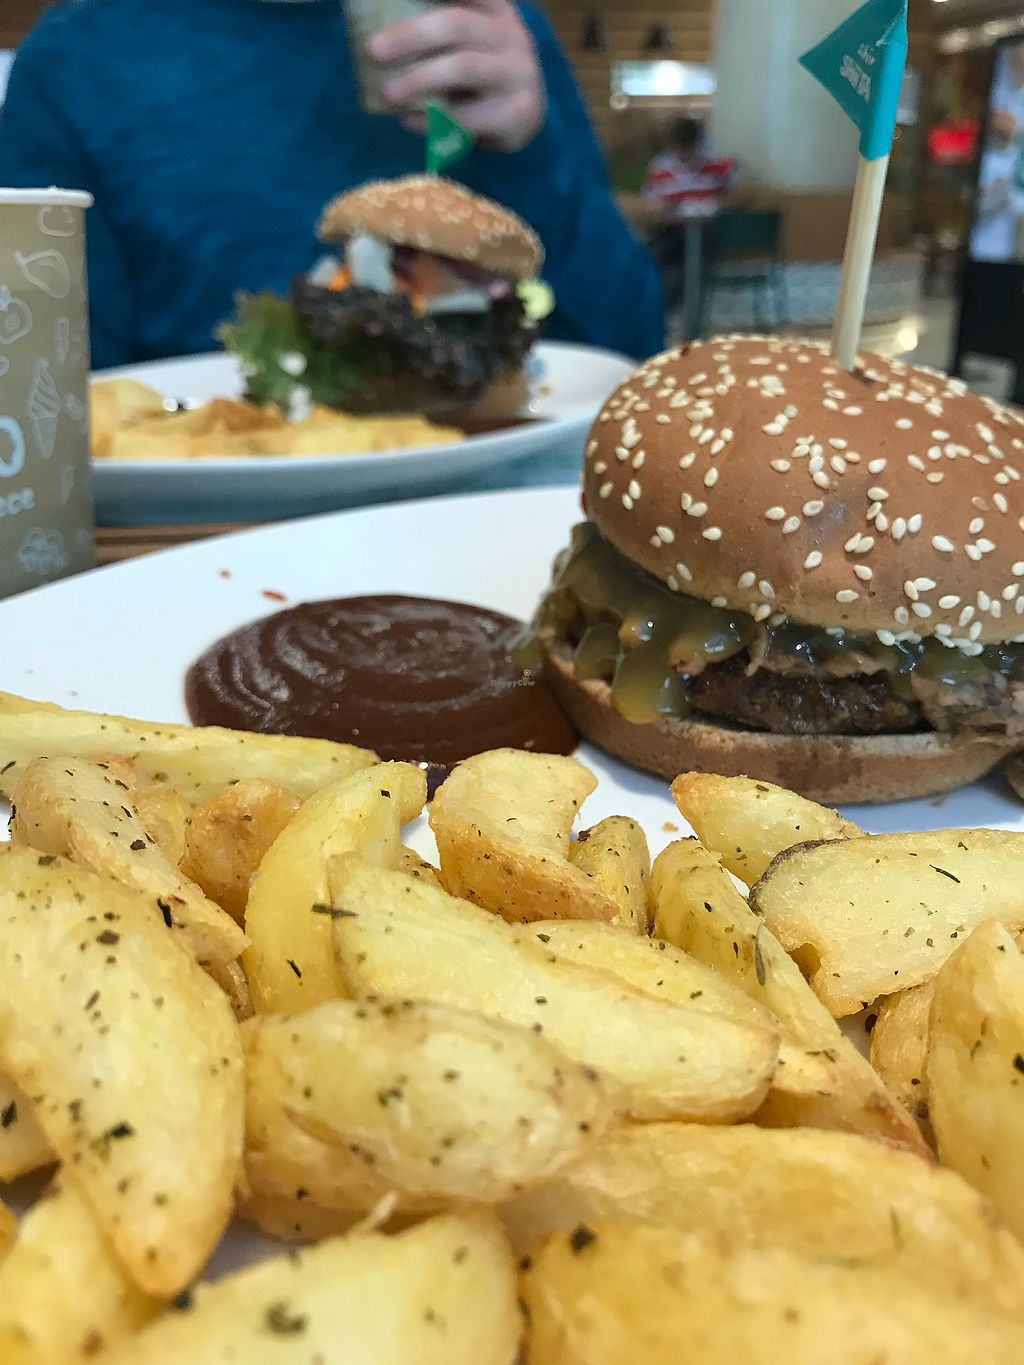 """Photo of Hareburger - Botafogo  by <a href=""""/members/profile/dazedkiwi"""">dazedkiwi</a> <br/>Burgers <br/> October 19, 2017  - <a href='/contact/abuse/image/79582/316610'>Report</a>"""